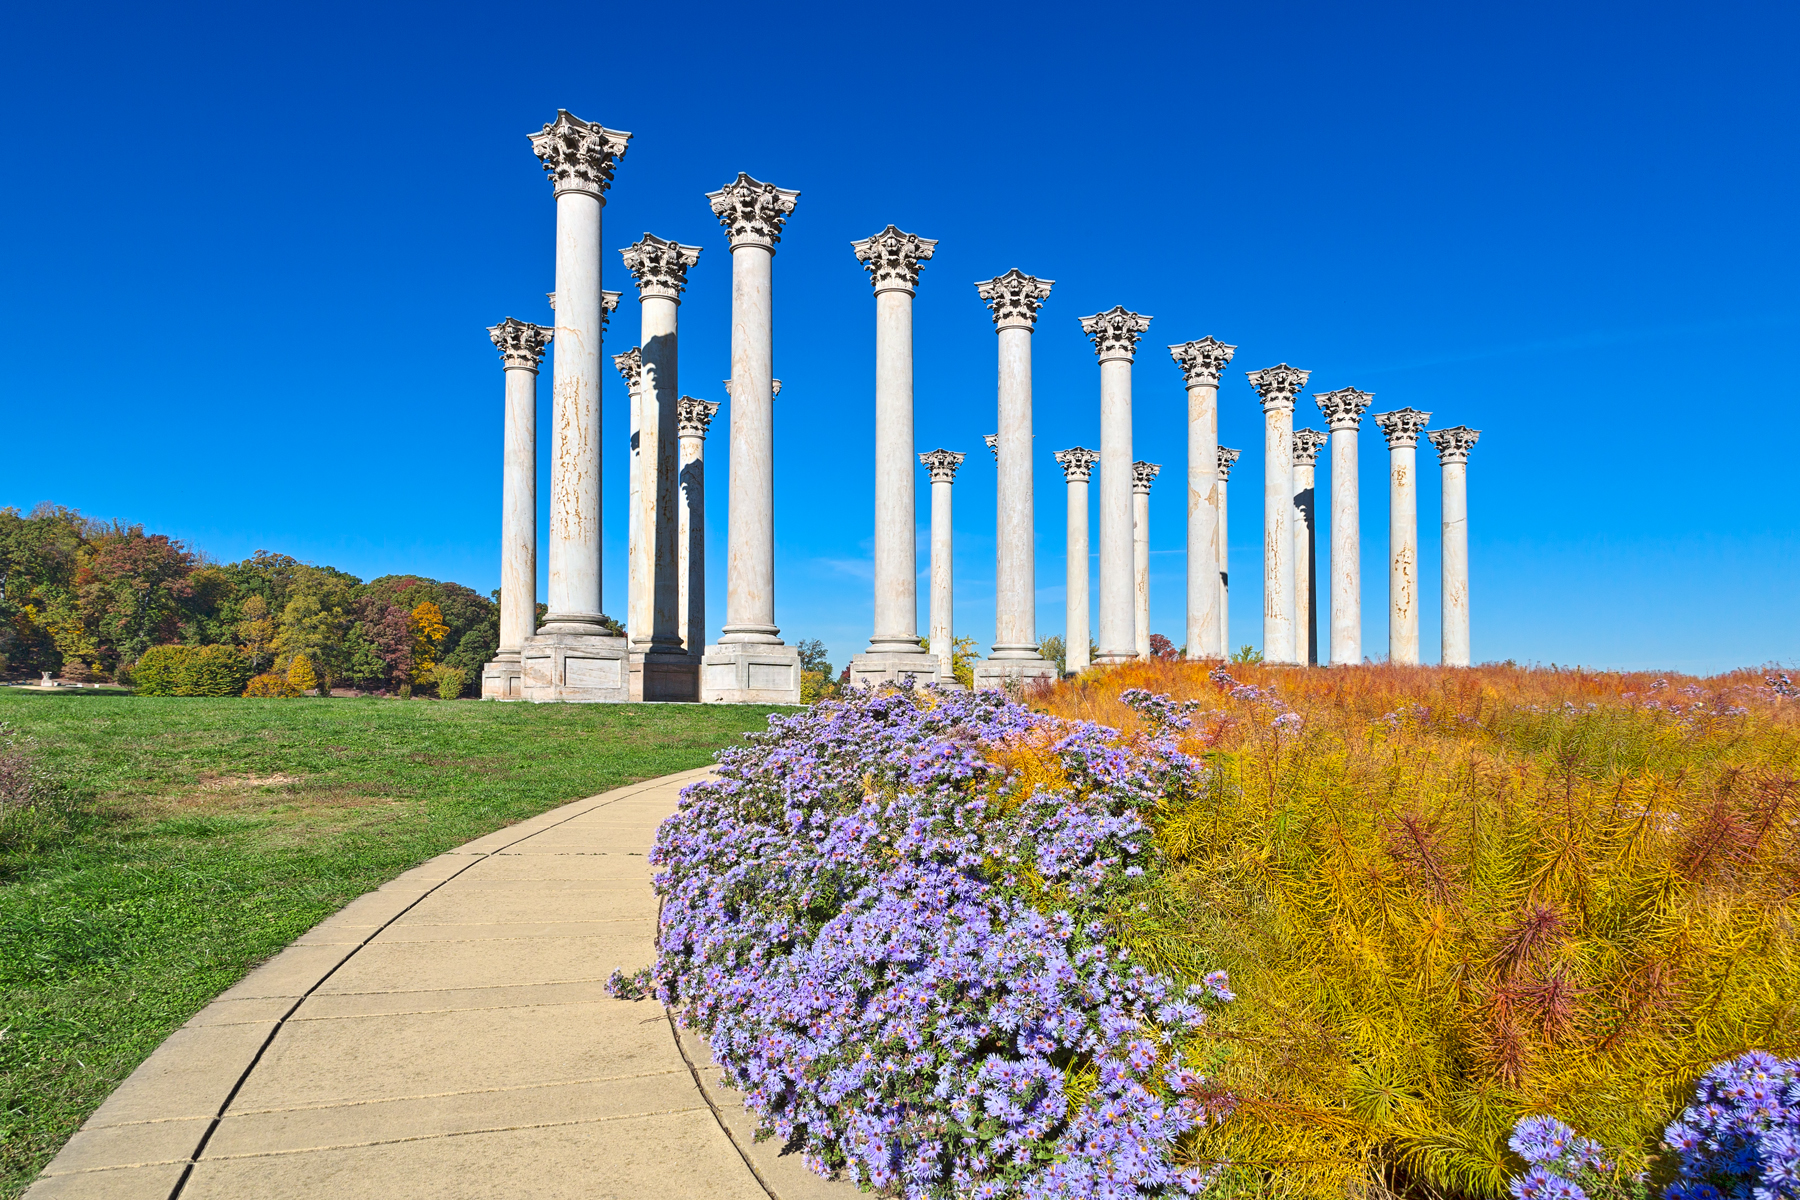 Capitol Arboretum Columns - HDR, Age, Pillars, Sky, Shades, HQ Photo